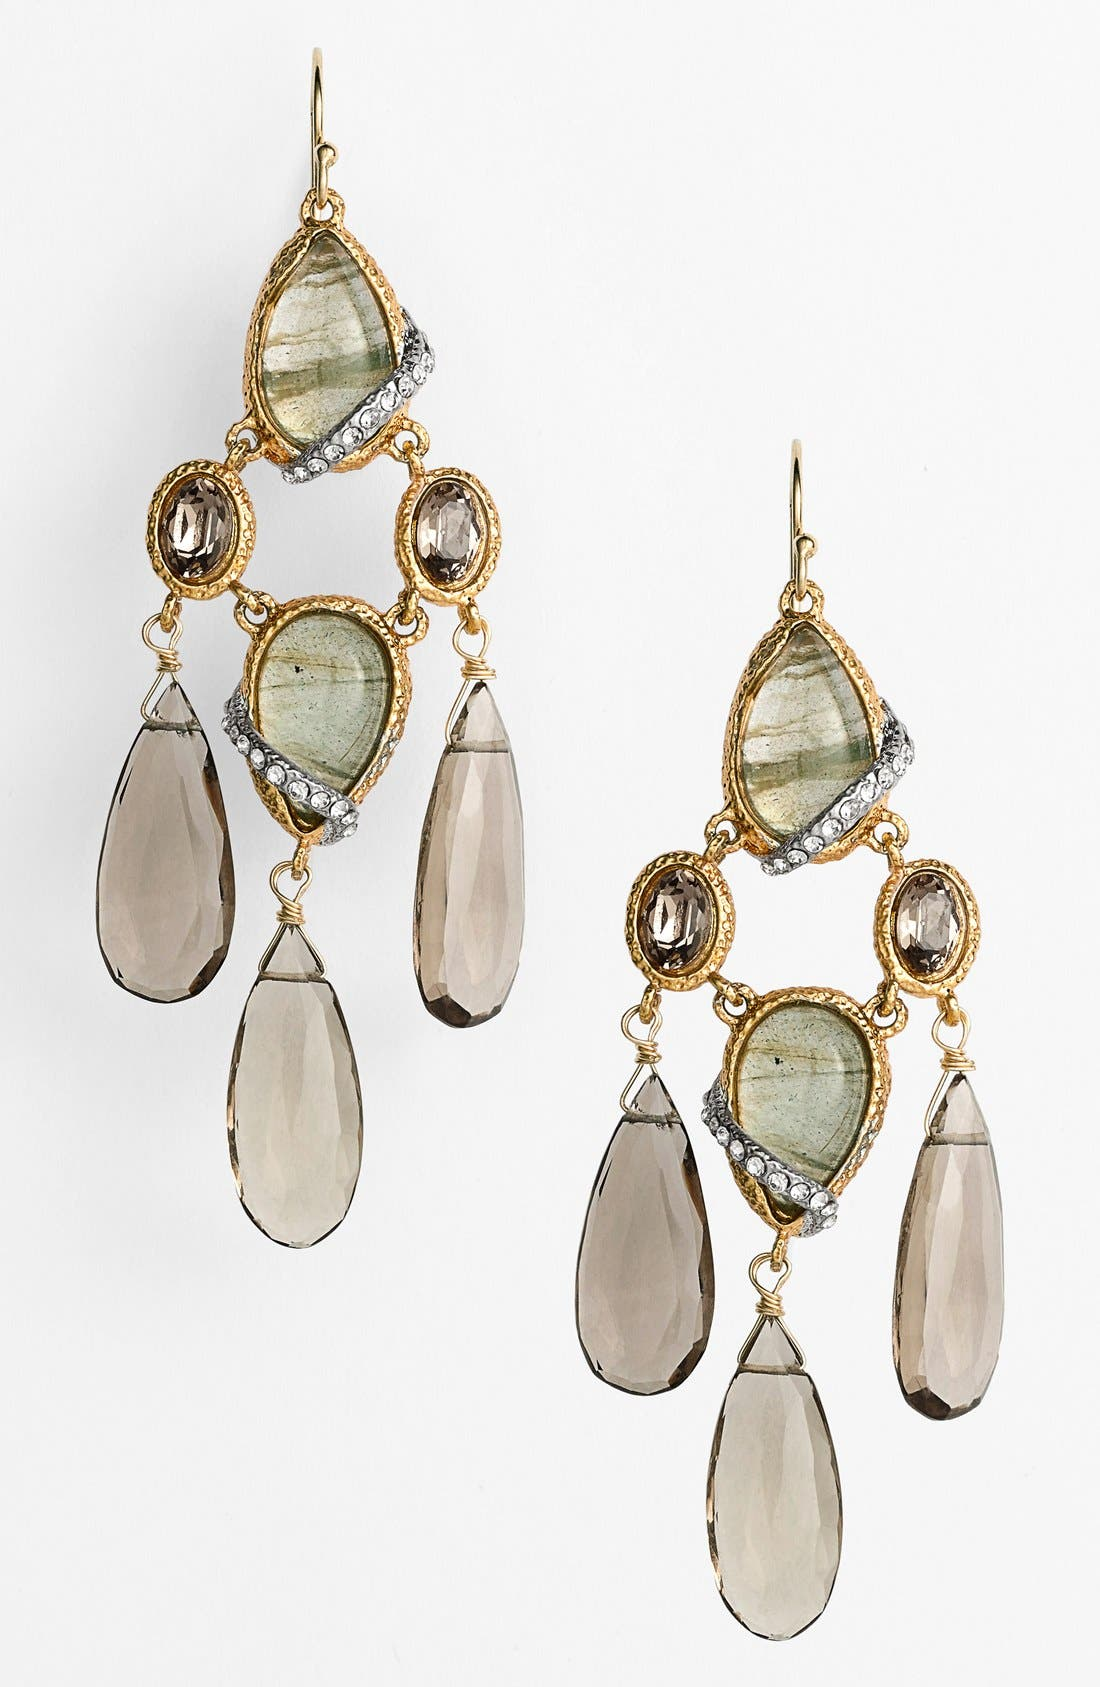 Alternate Image 1 Selected - Alexis Bittar 'Elements' Chandelier Earrings (Nordstrom Exclusive)